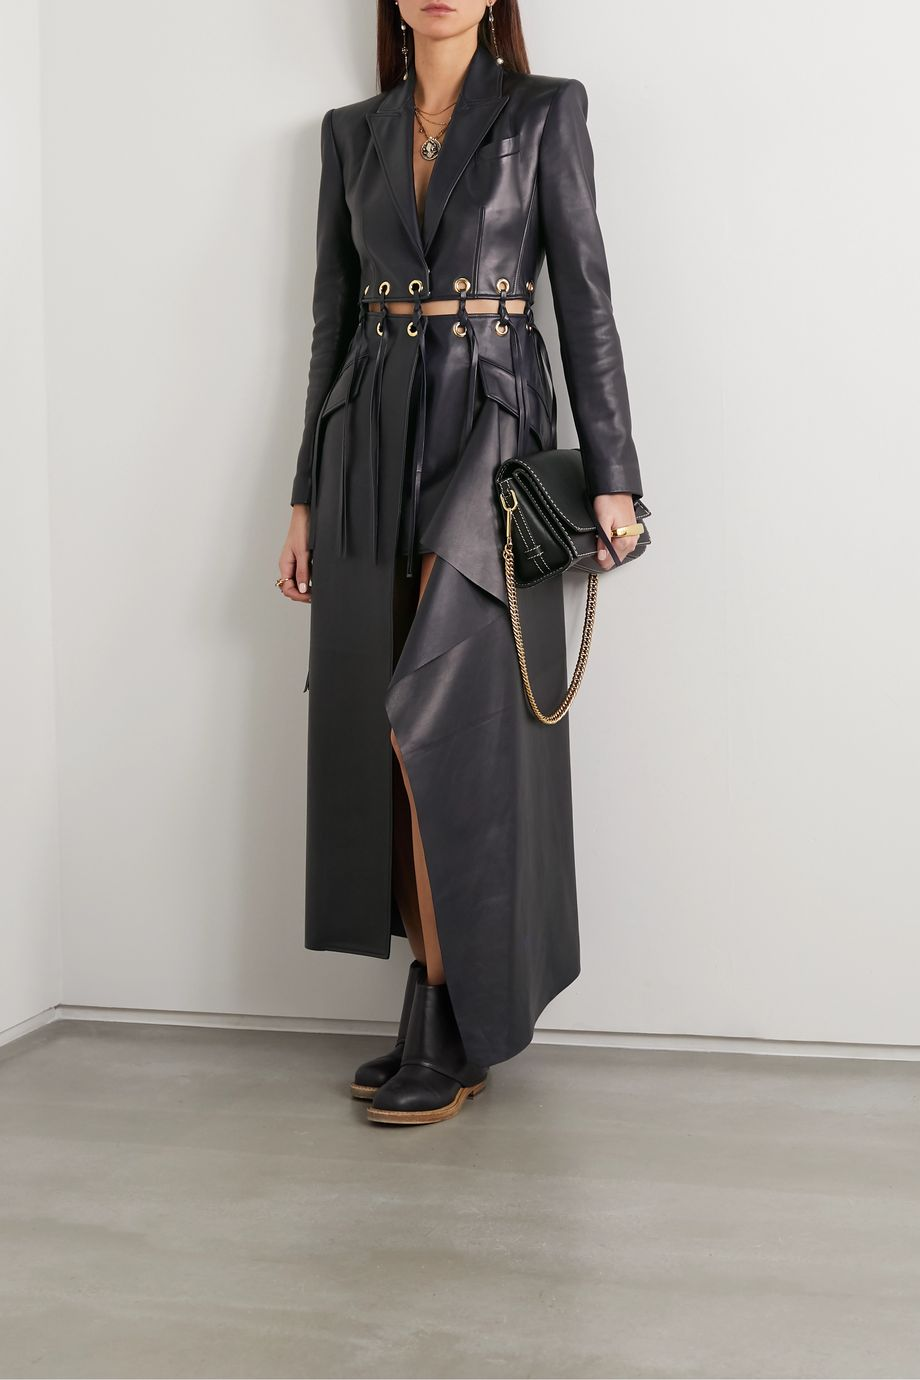 Alexander McQueen Fringed eyelet-embellished leather coat